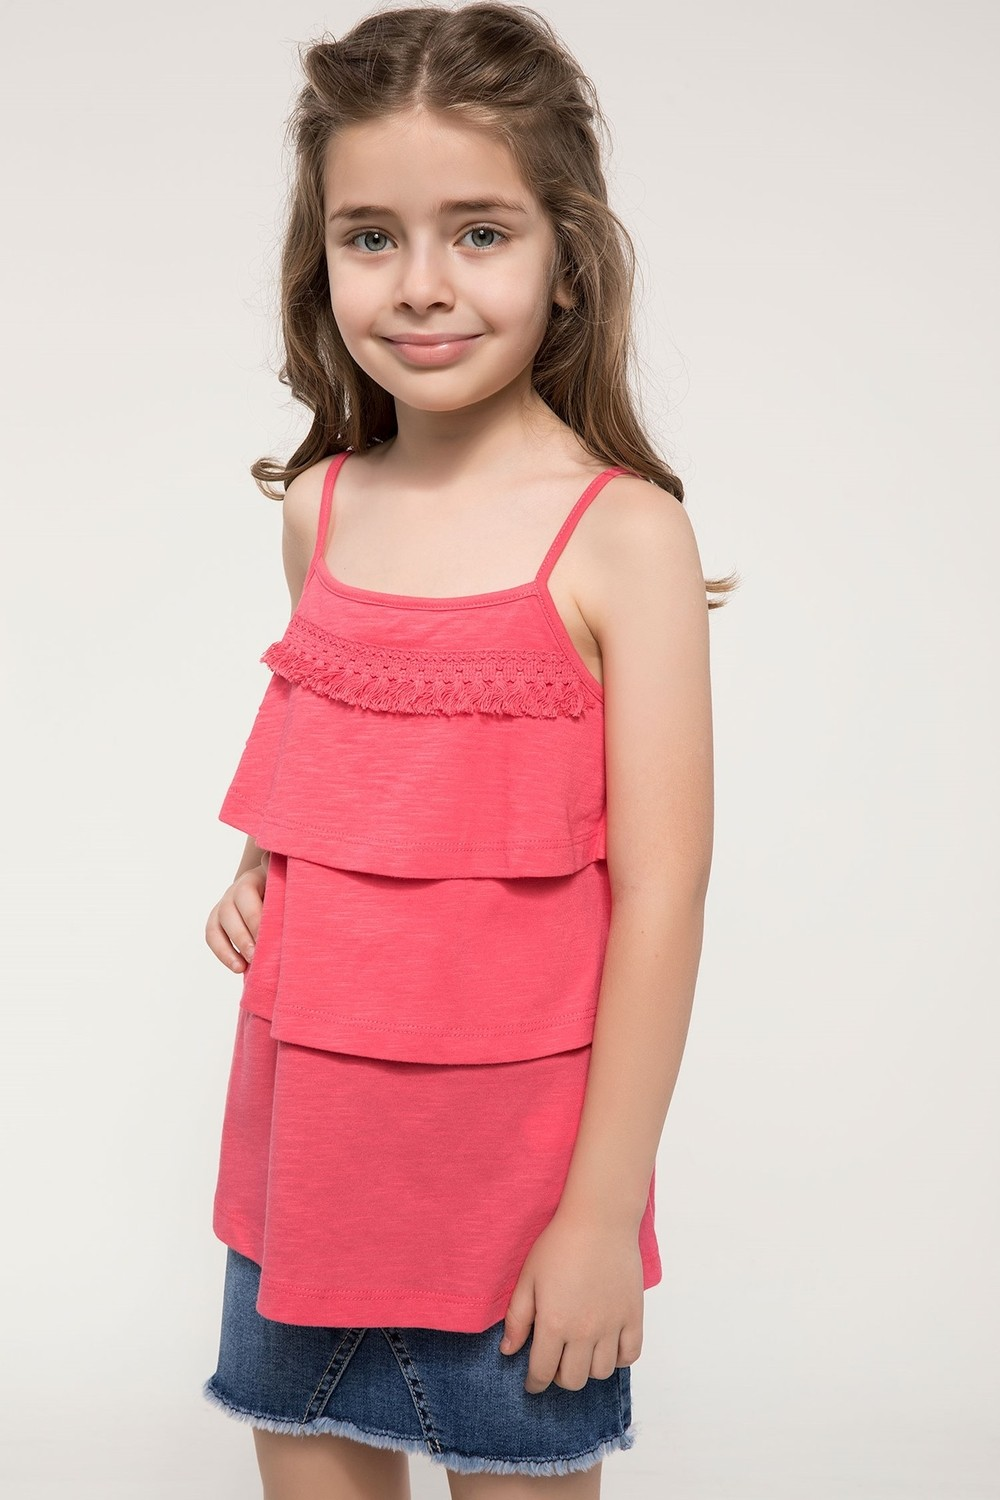 DeFacto Girls Blouse with Ruffles Details